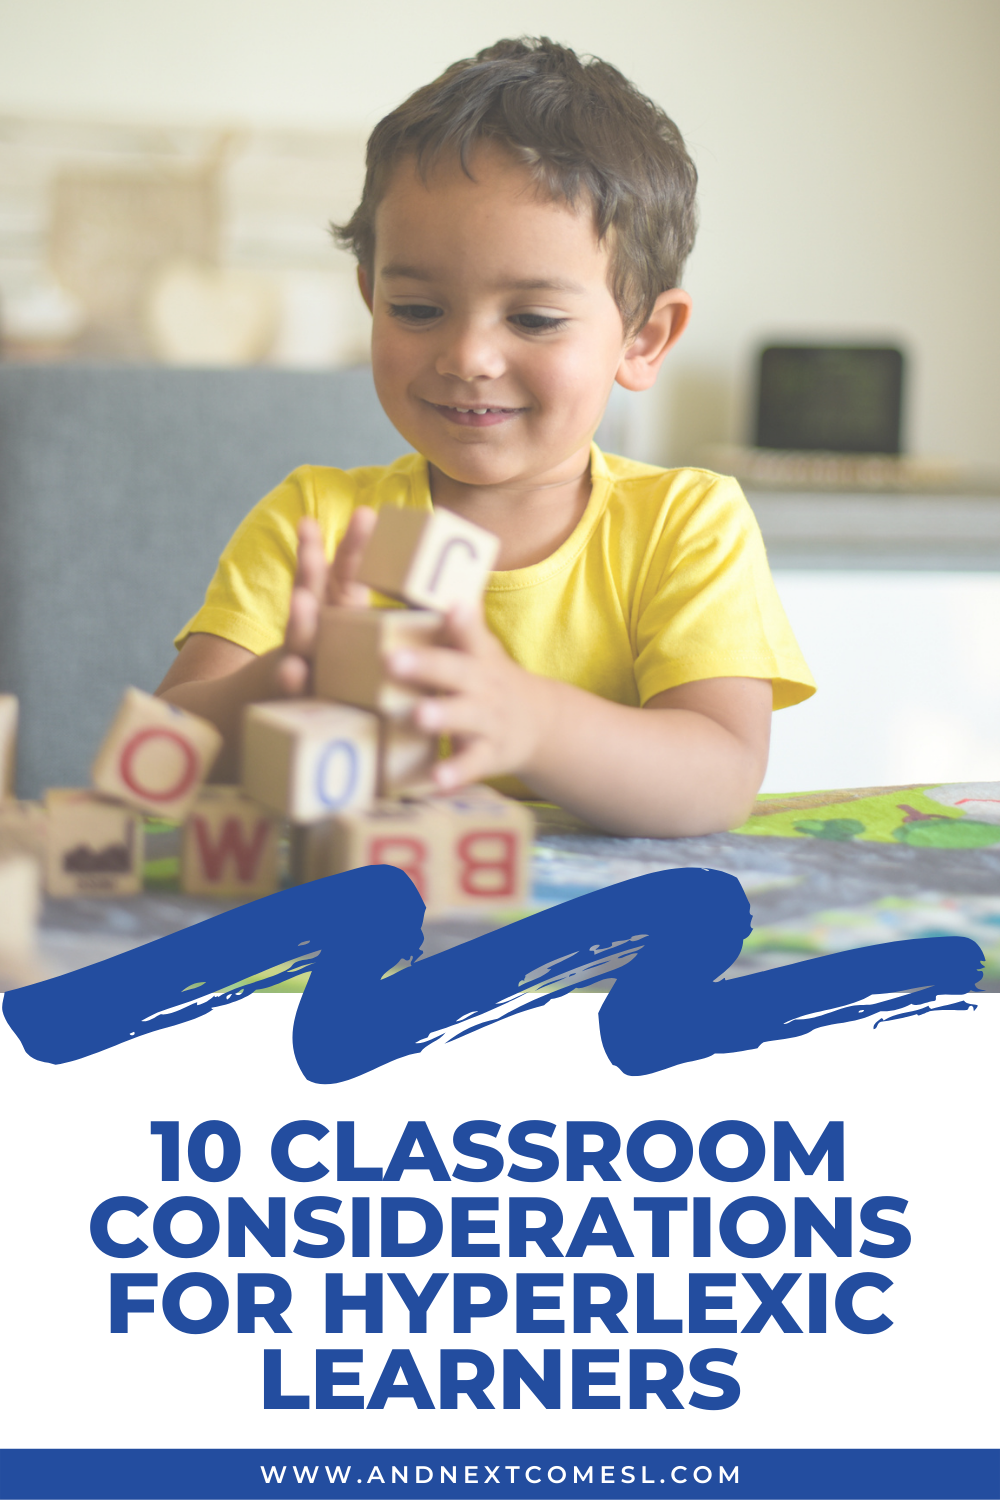 Important school classroom considerations for hyperlexic learners